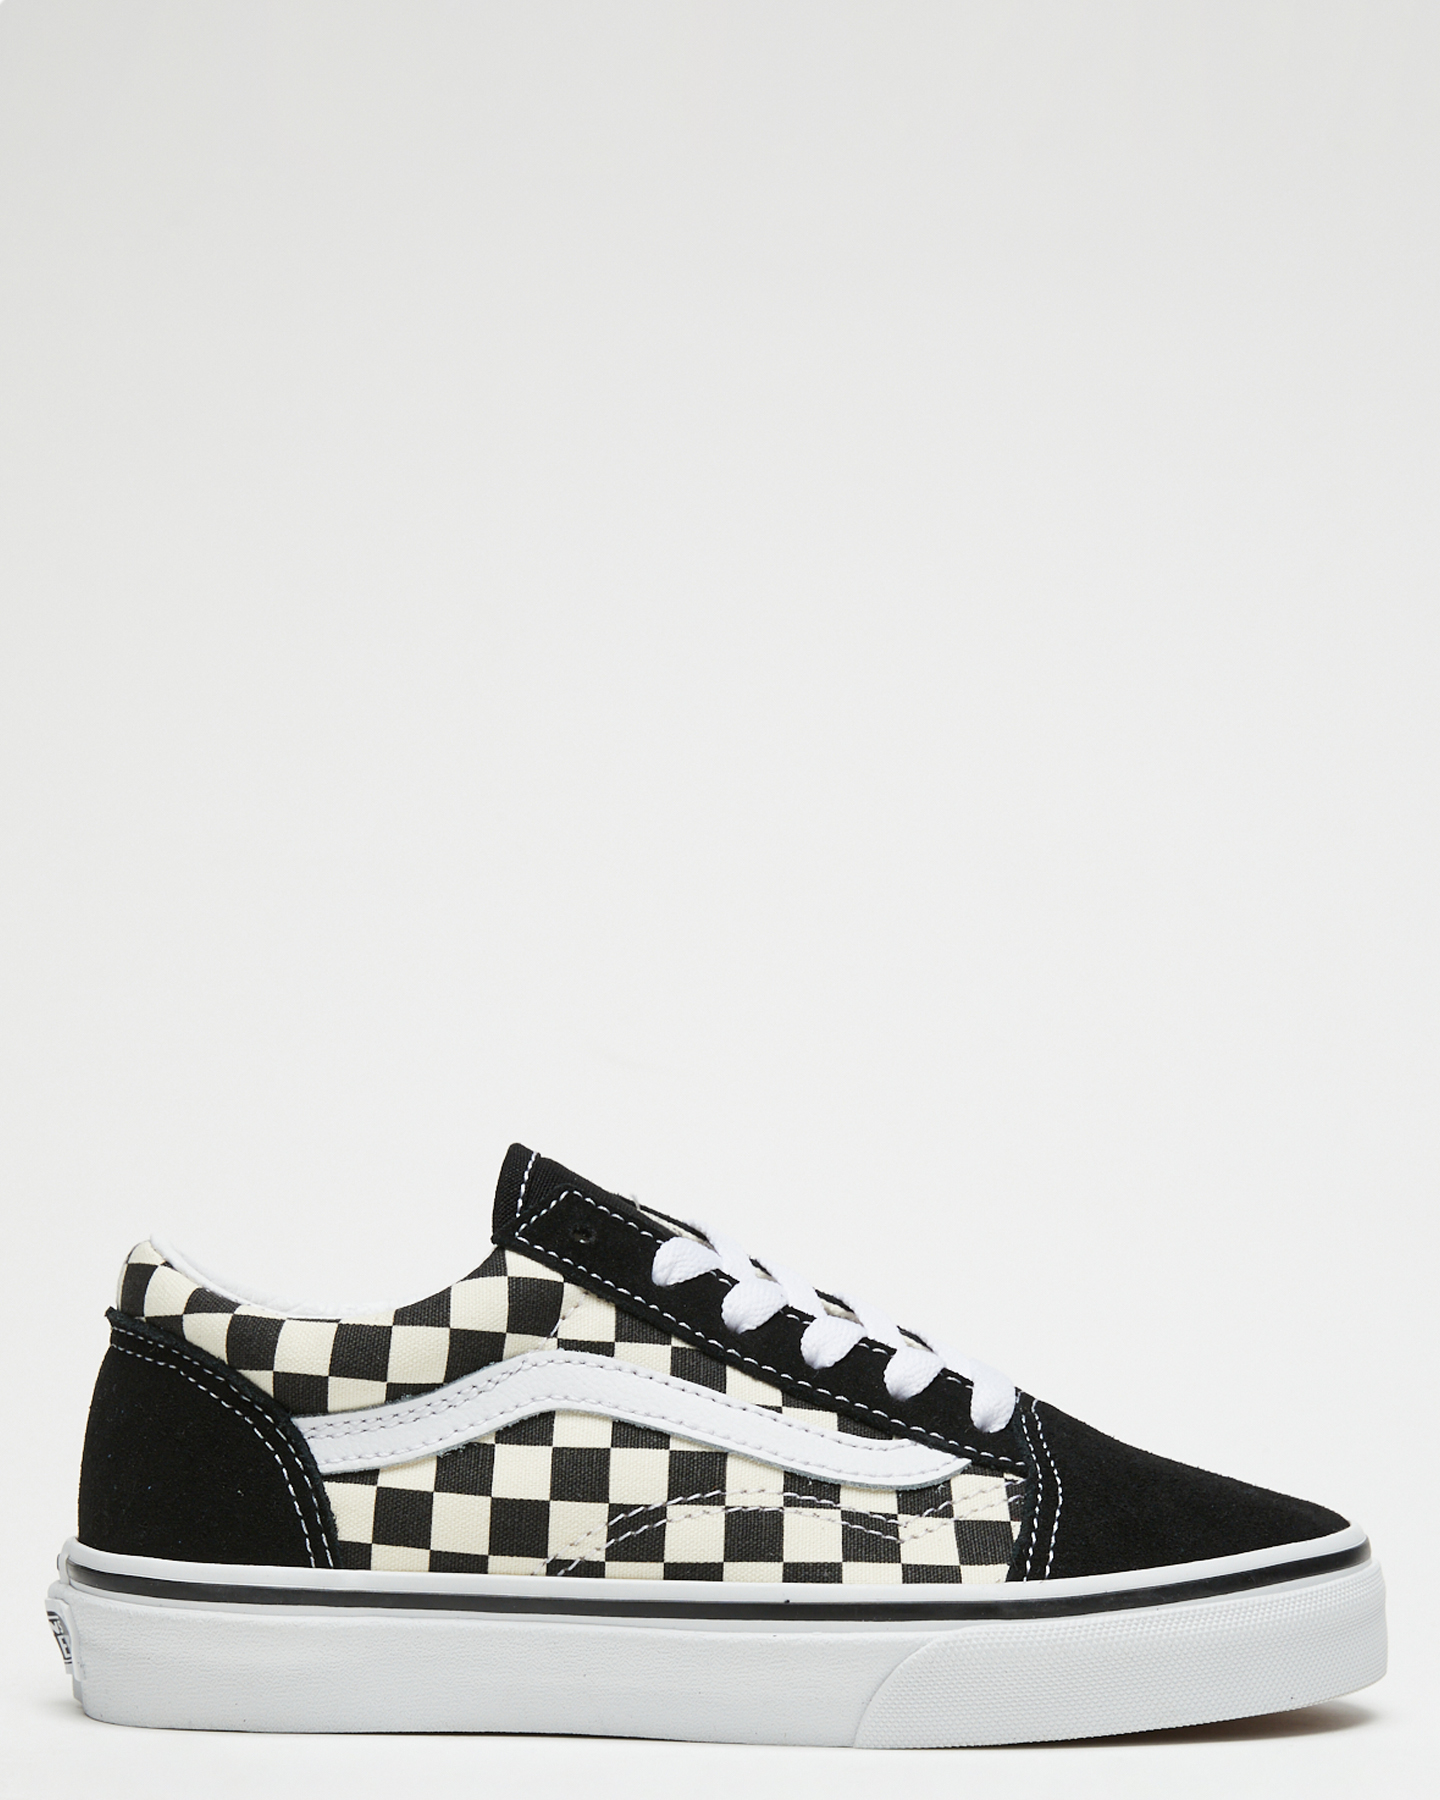 Vans Old Skool Primary Check Shoe - Youth Black White